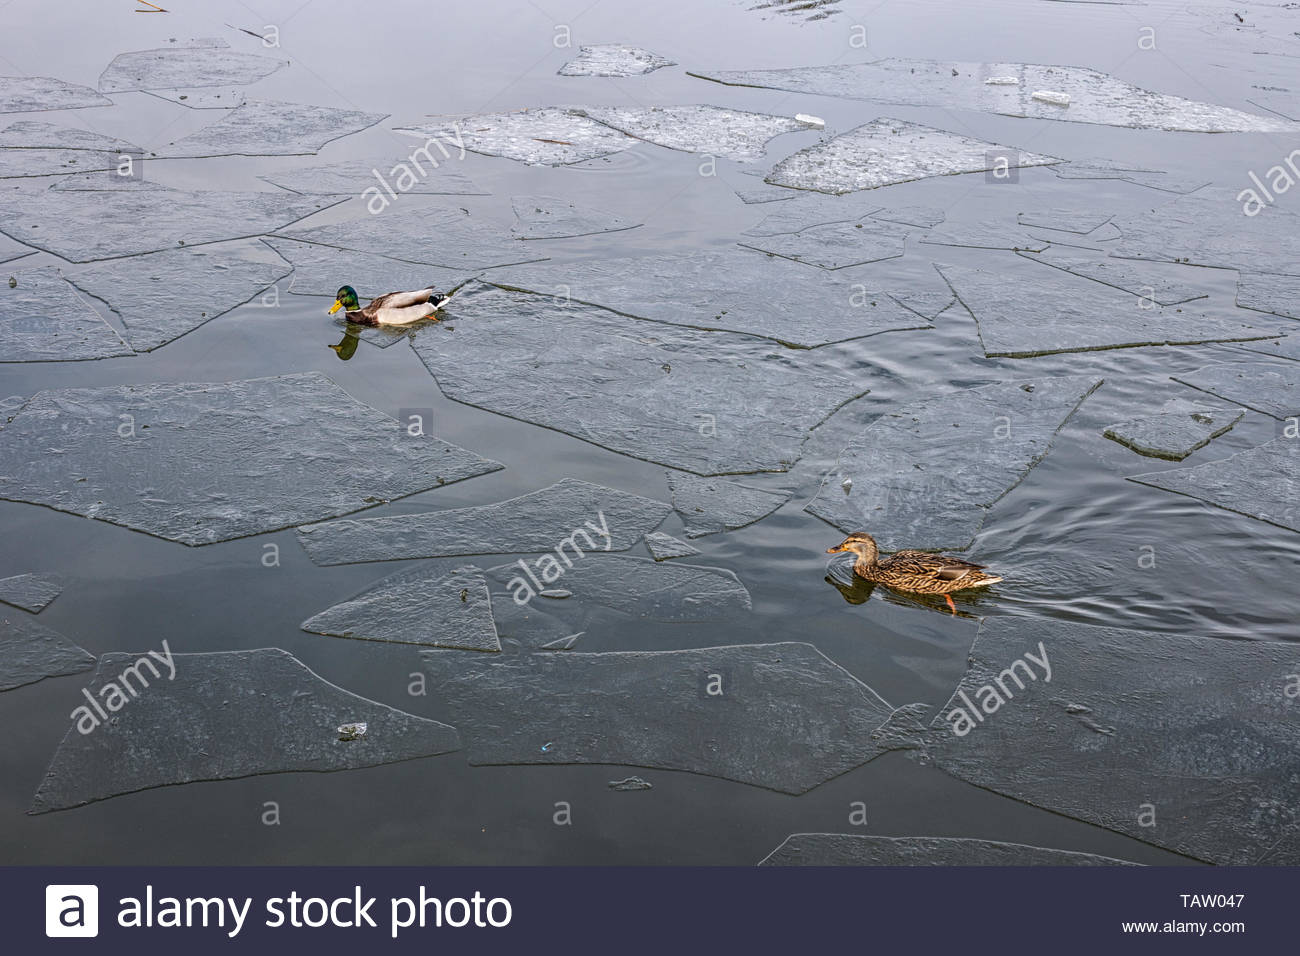 River Ryck frozen with ducks - Stock Image